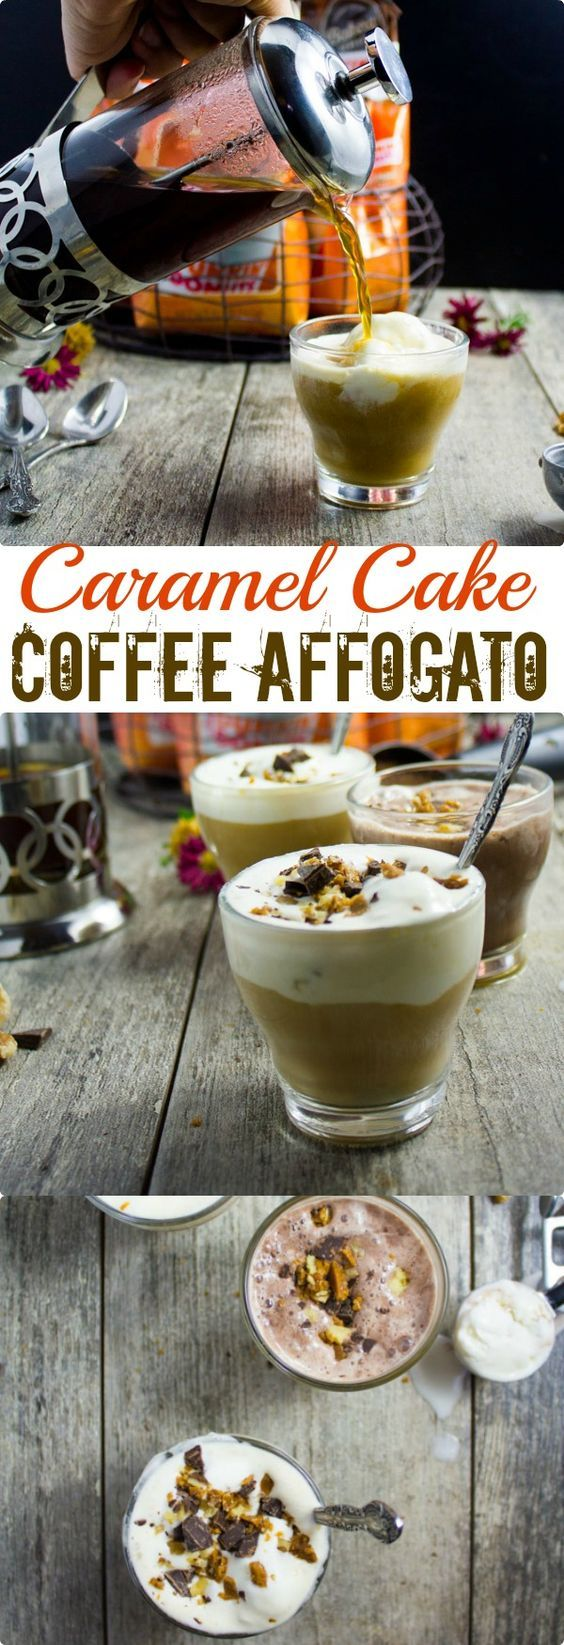 Caramel Coffee Cake Coffee Affogato. The best twist on an Italian all time favorite dessert--made with piping hot flavoured American coffee, and sprinkled with caramel bits, nuts and chocolate chips--PURE coffee Perfection! www.twopurplefigs.com #ad #DunkinatHome: